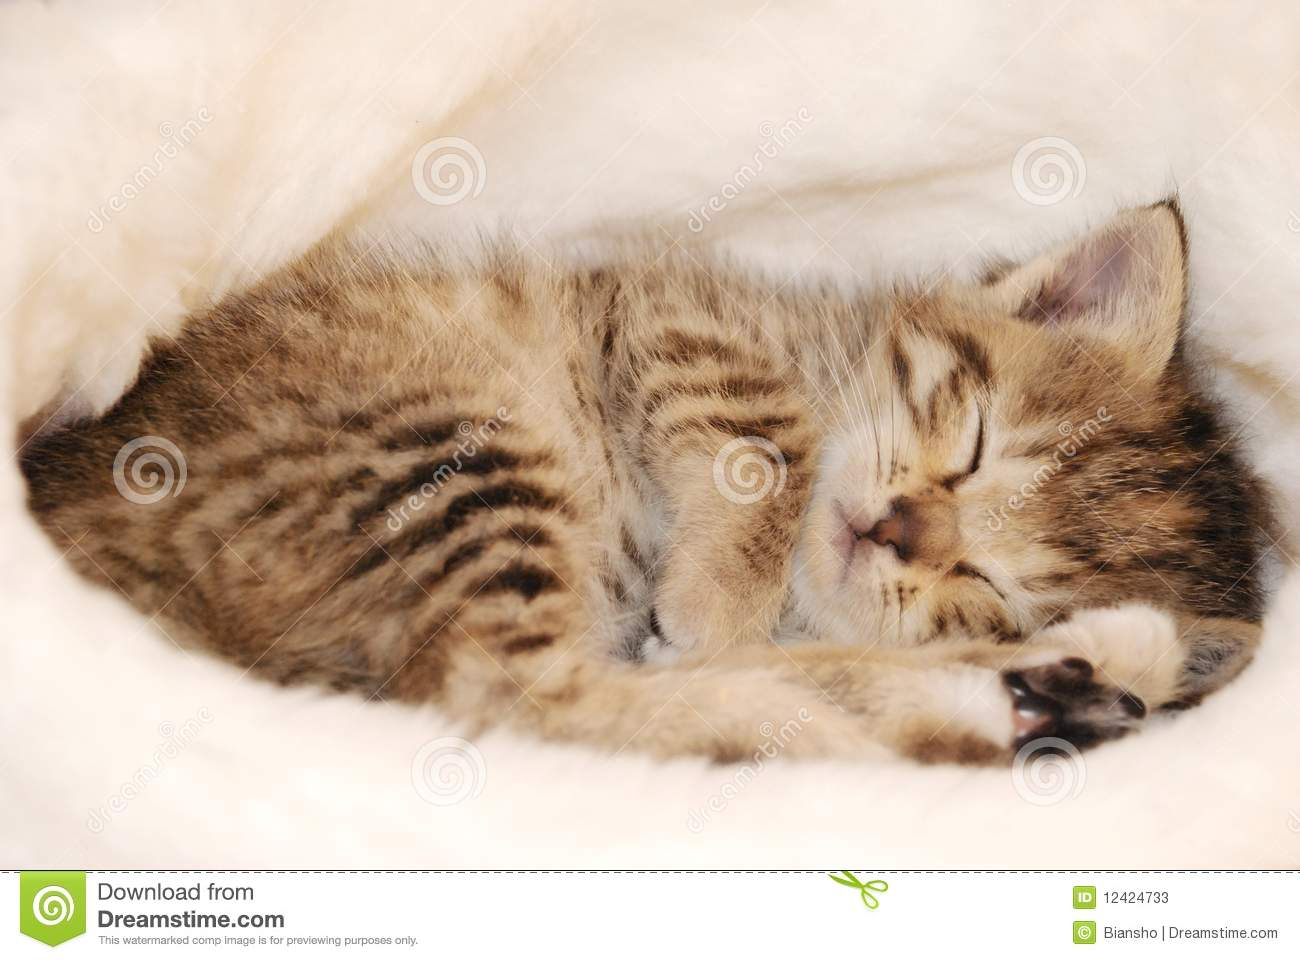 Cute kitten sleeping stock image Image of cute charming